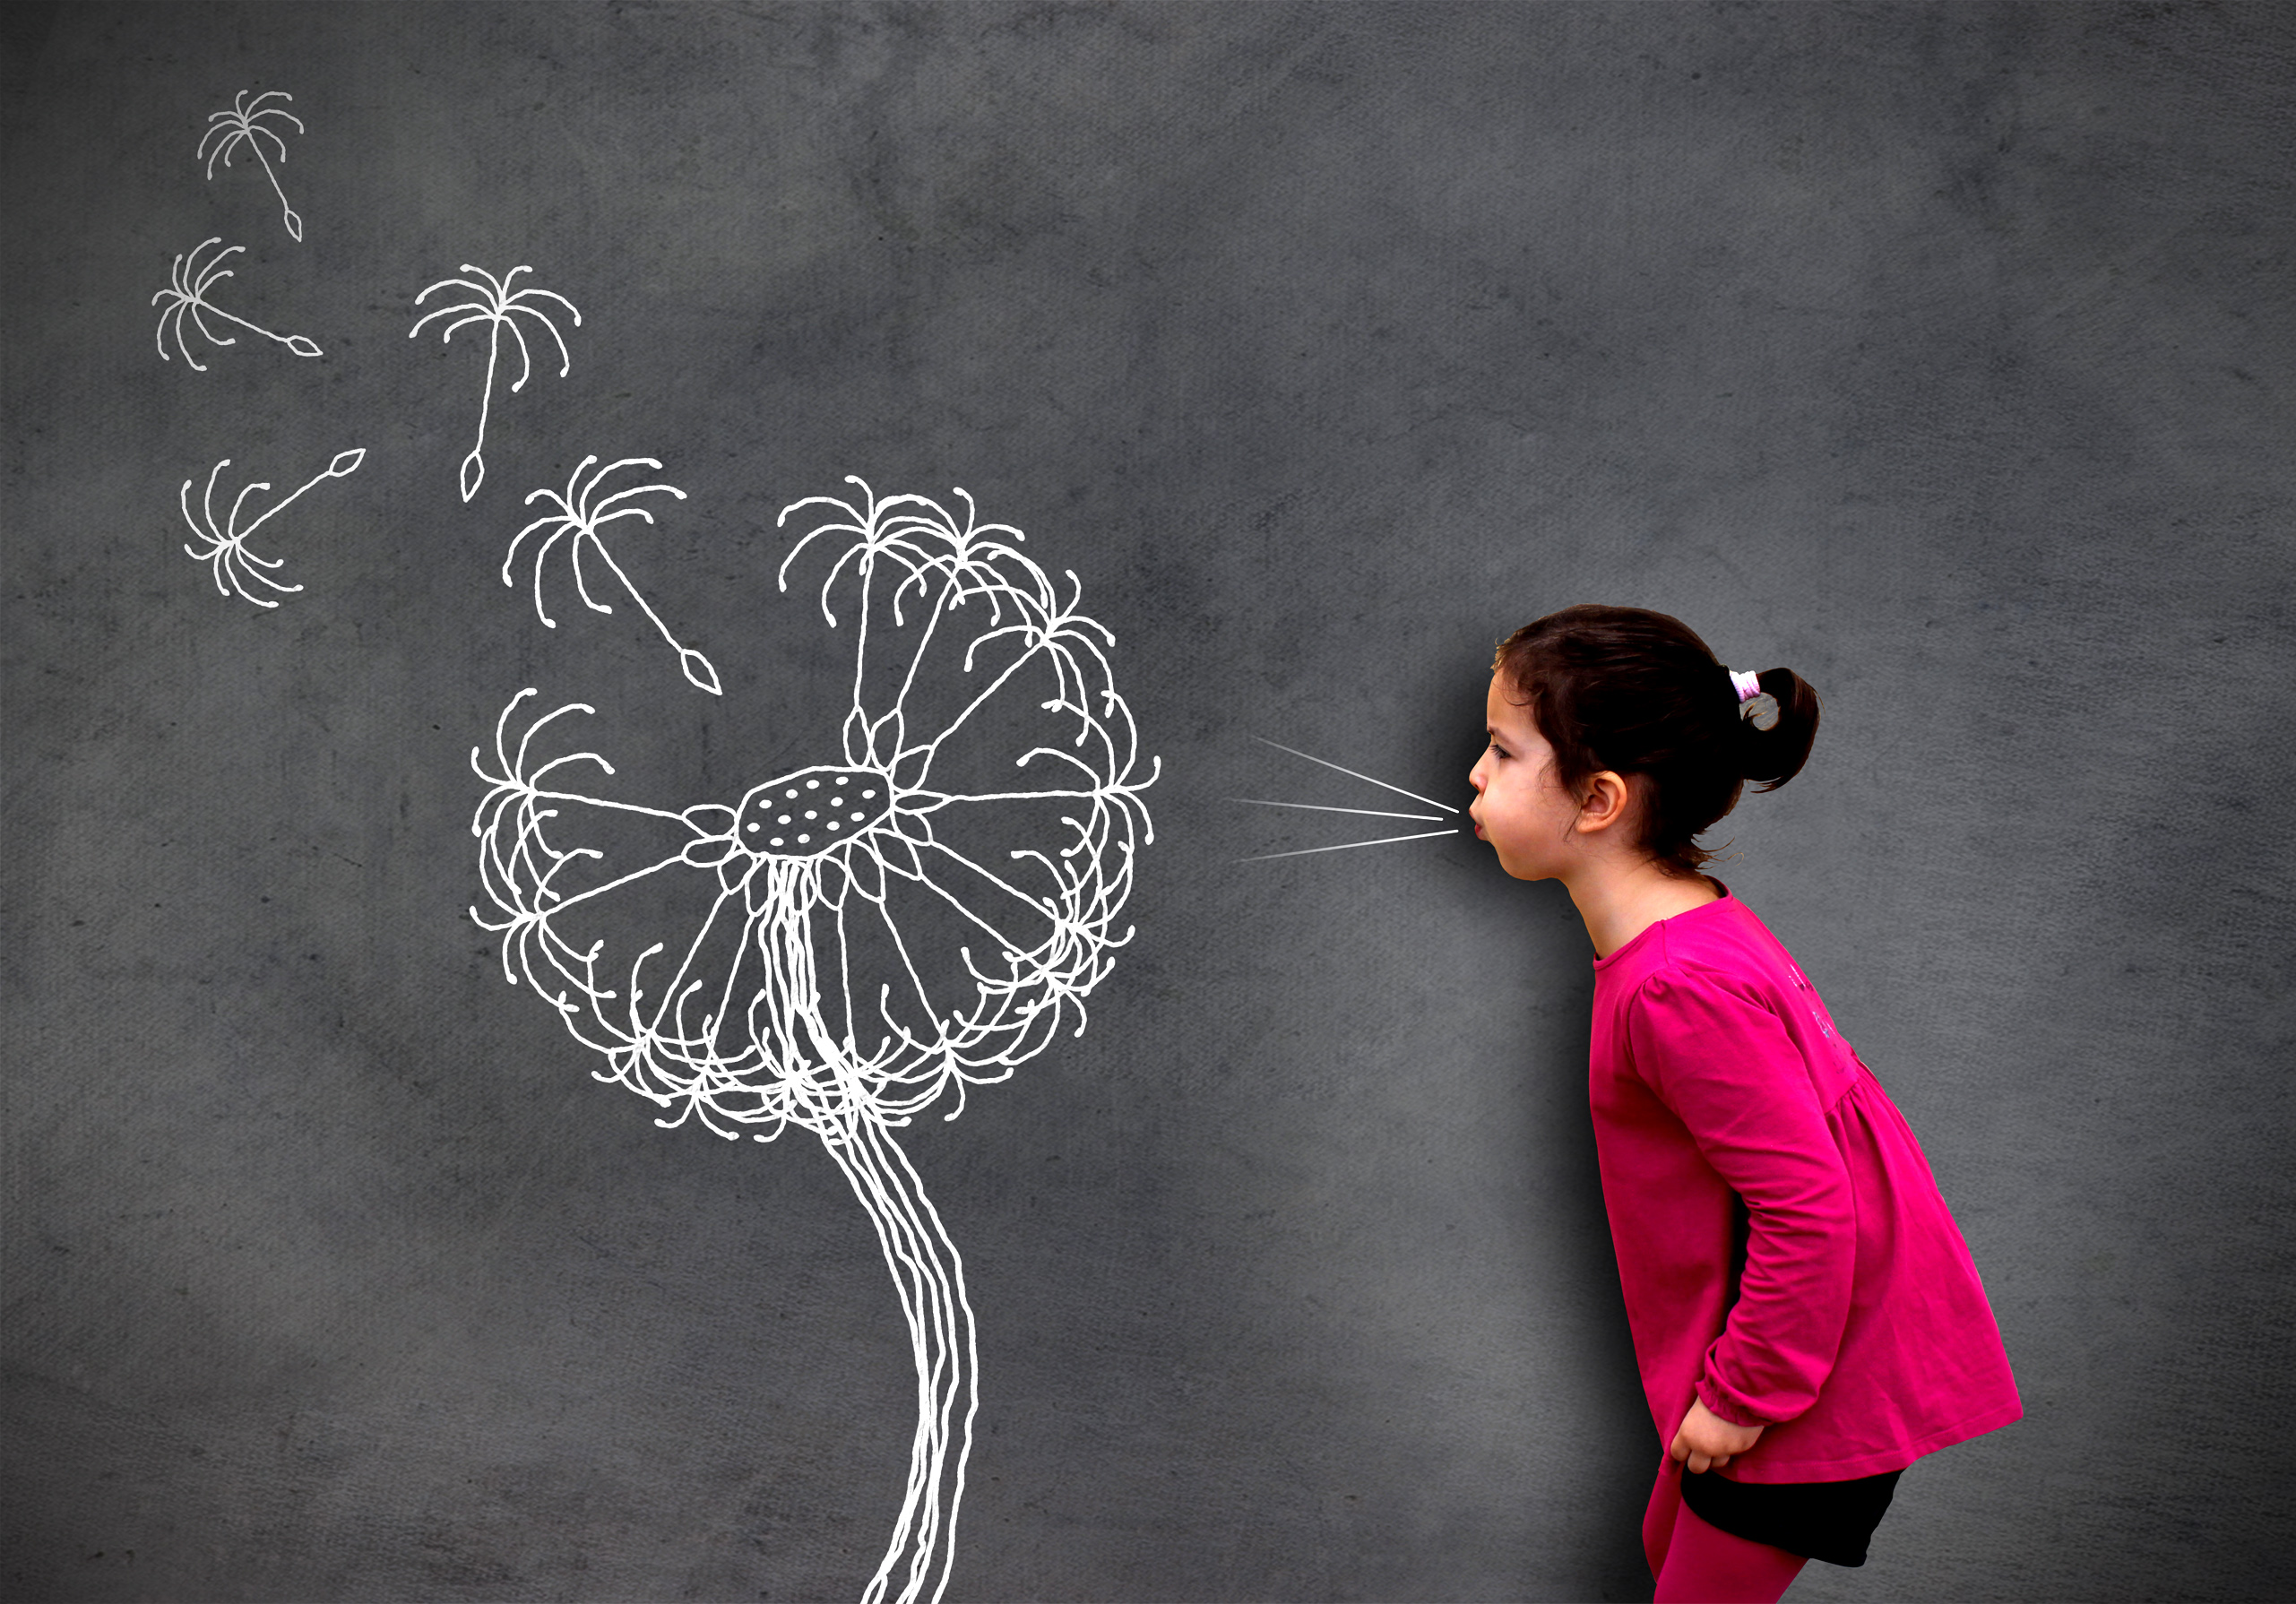 Little cute girl blowing dandelion seeds on chalkboard photo